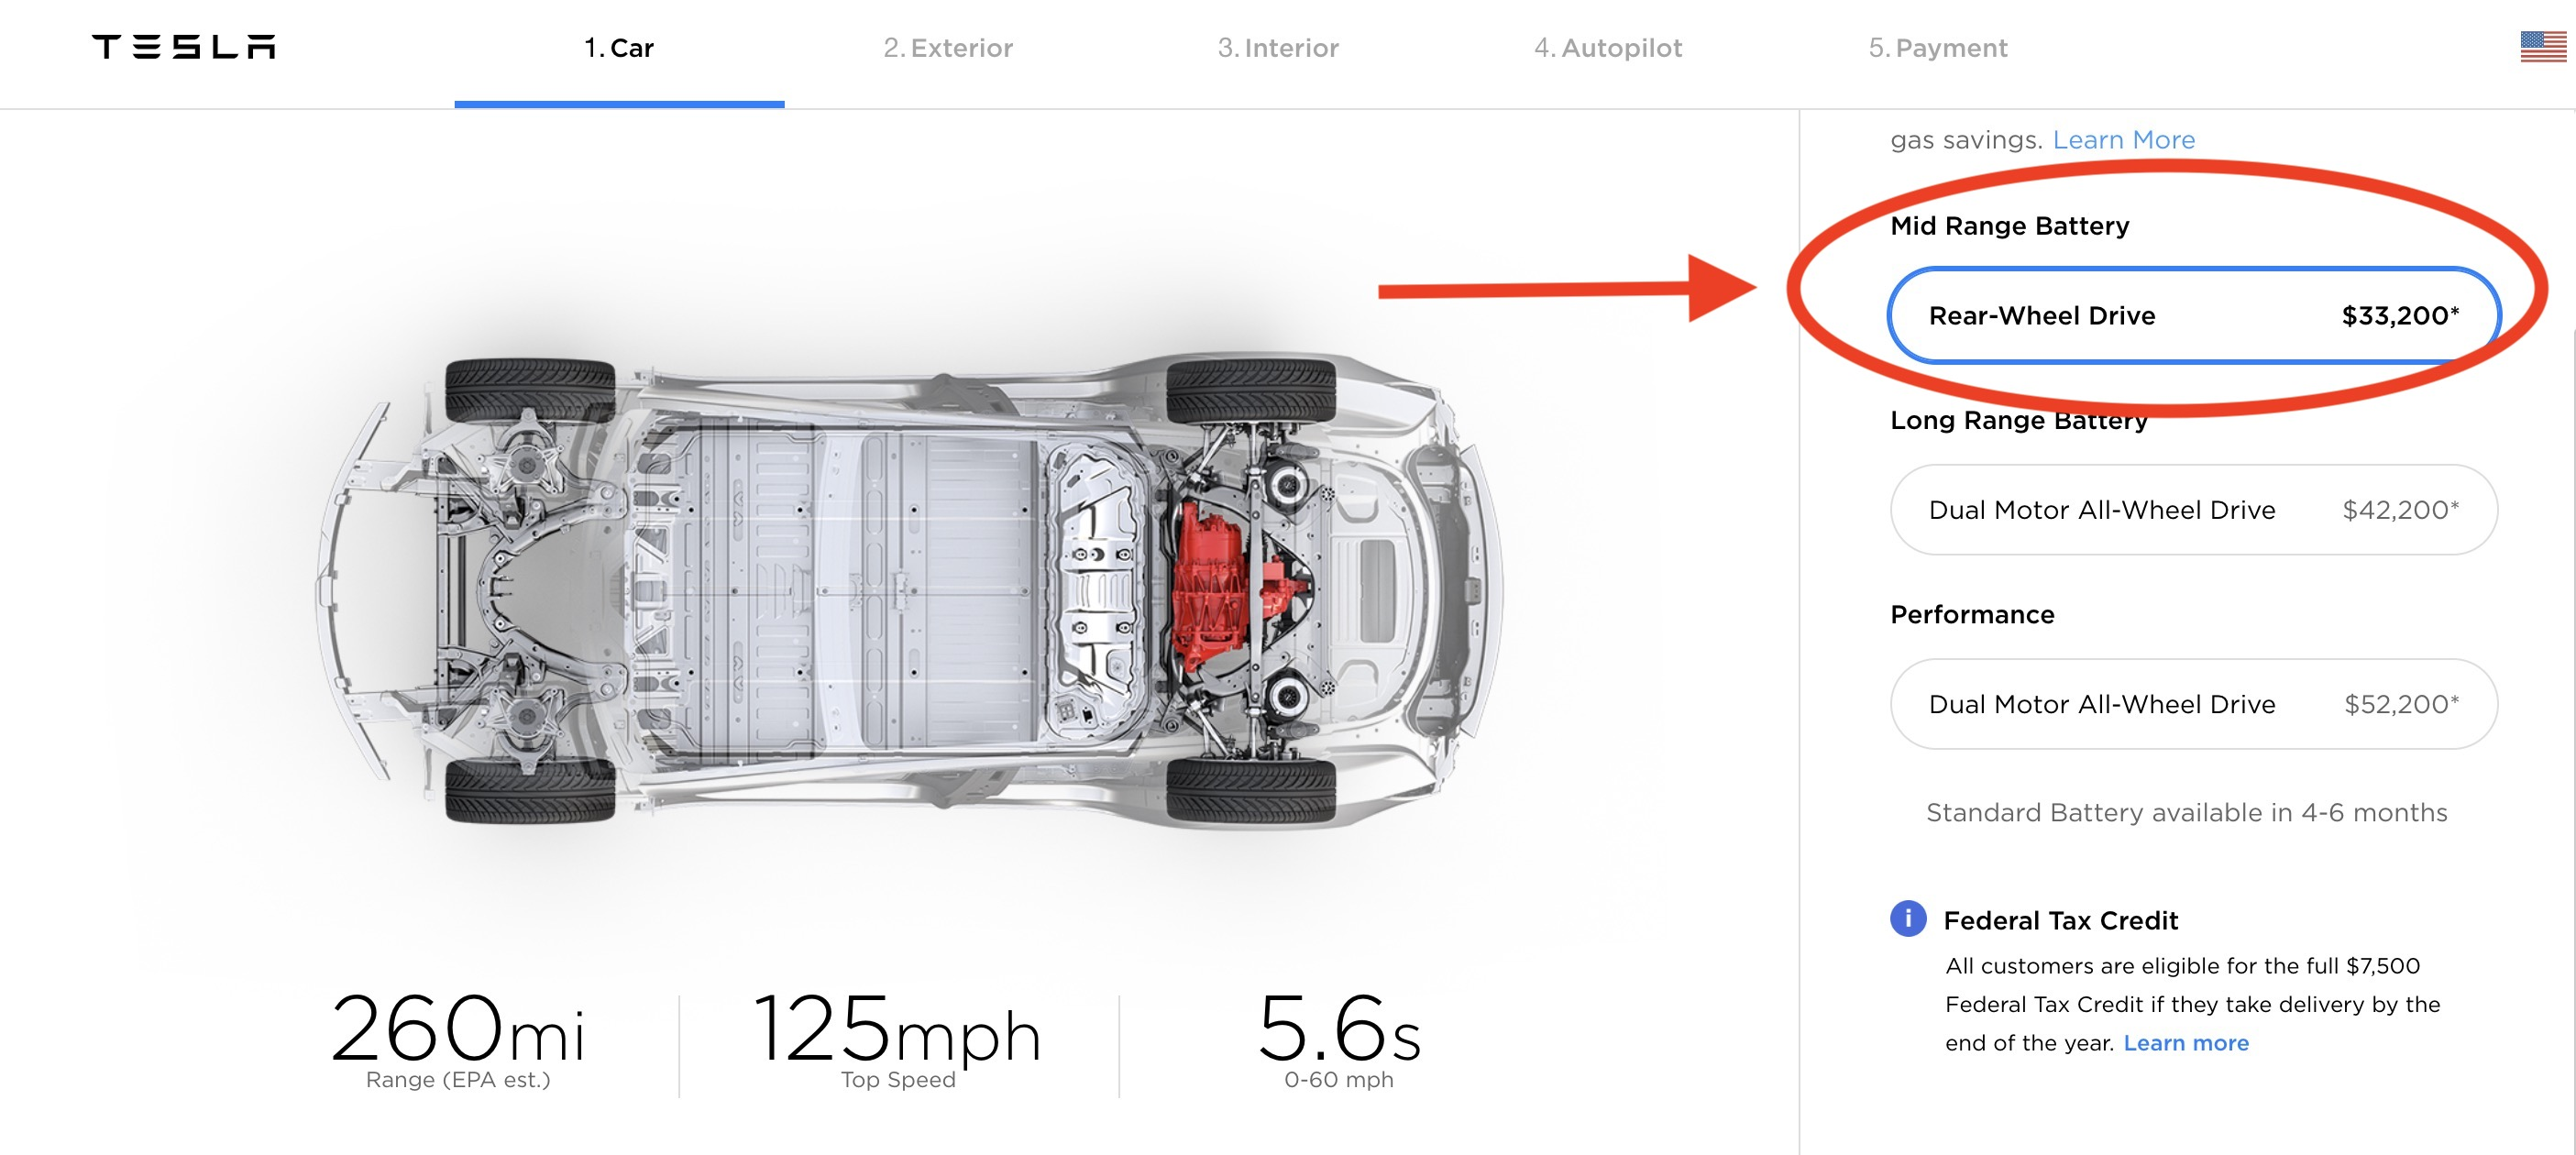 Tesla Launches New Model 3 With U0027mid Rangeu0027 Battery For $45,000, Changes Pricing  Structure